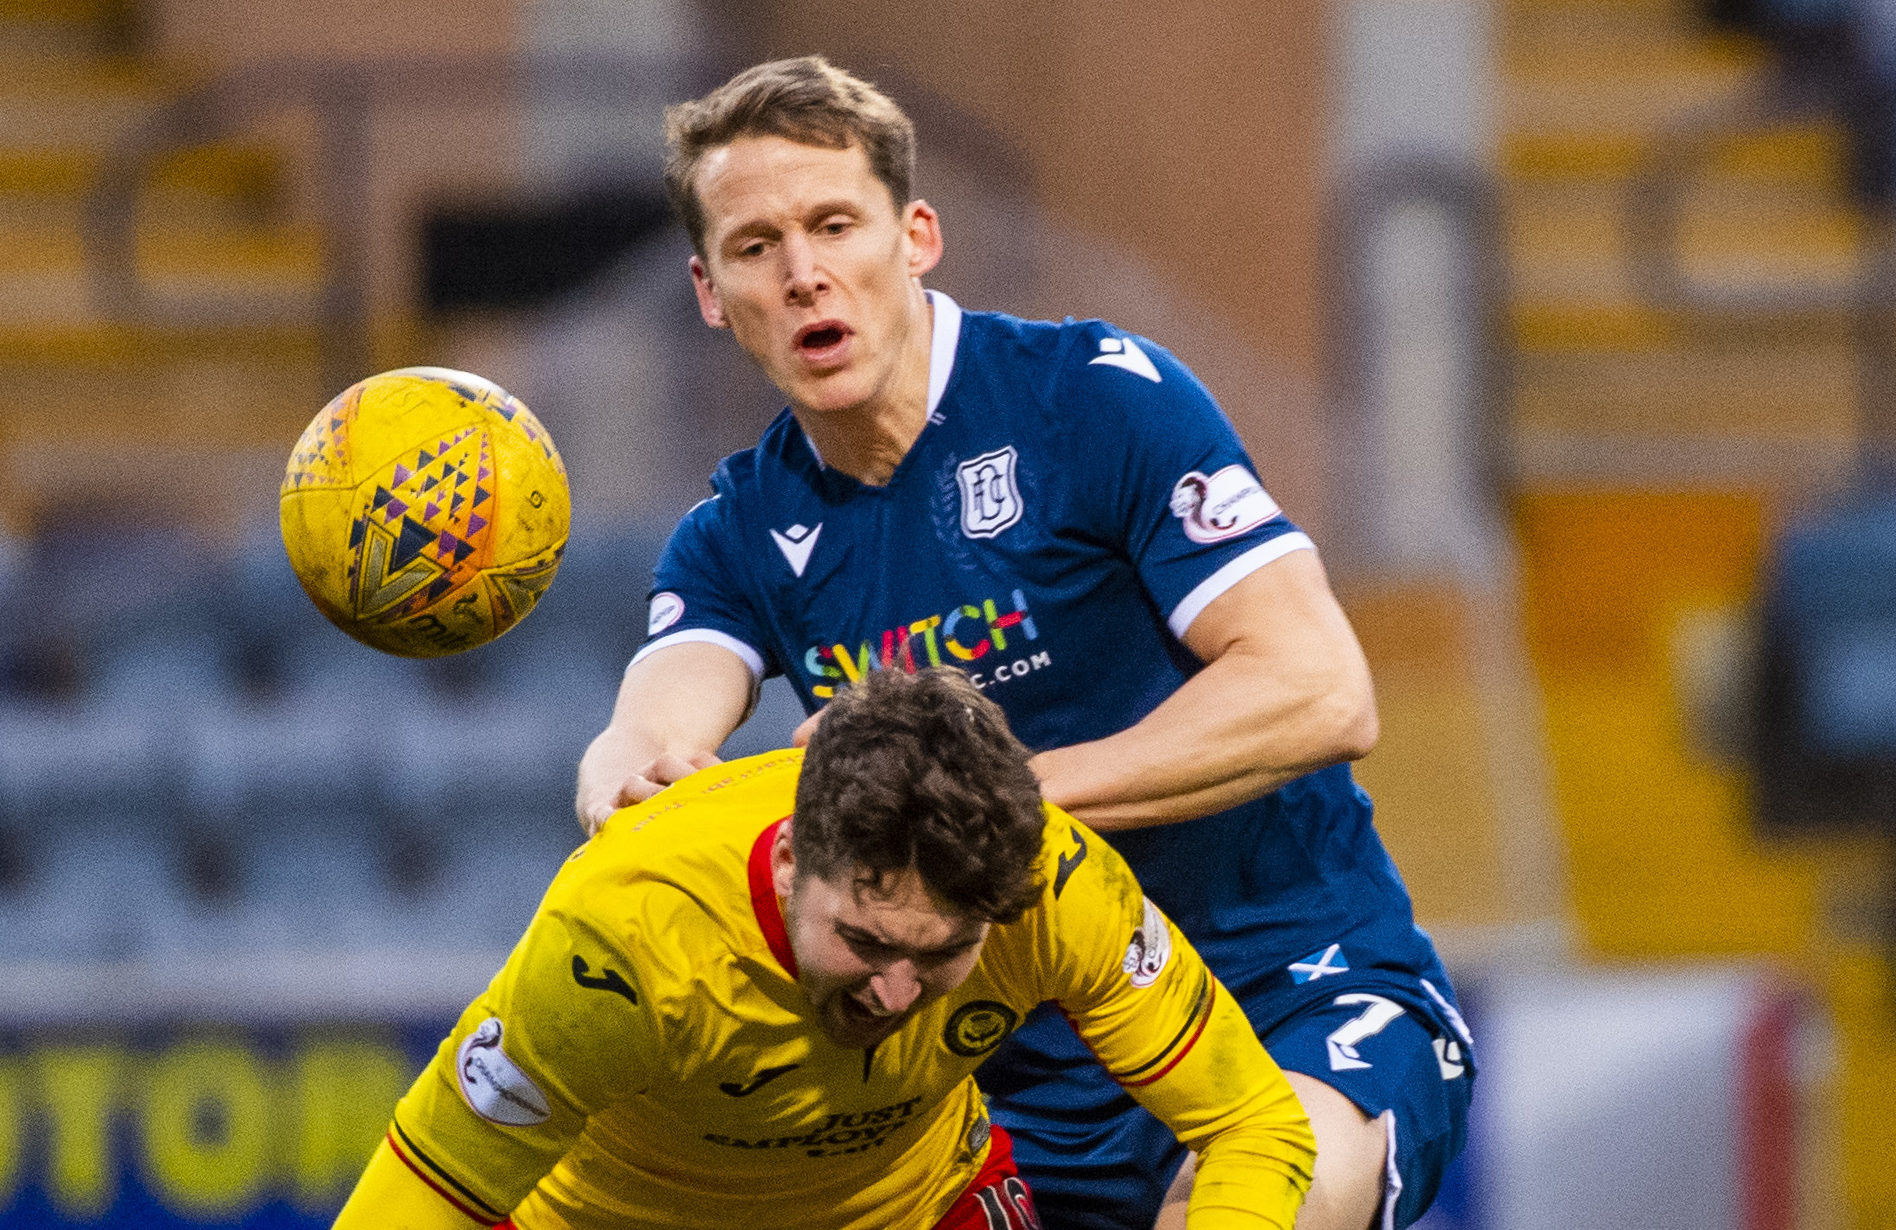 Christophe Berra in action against Partick Thistle.